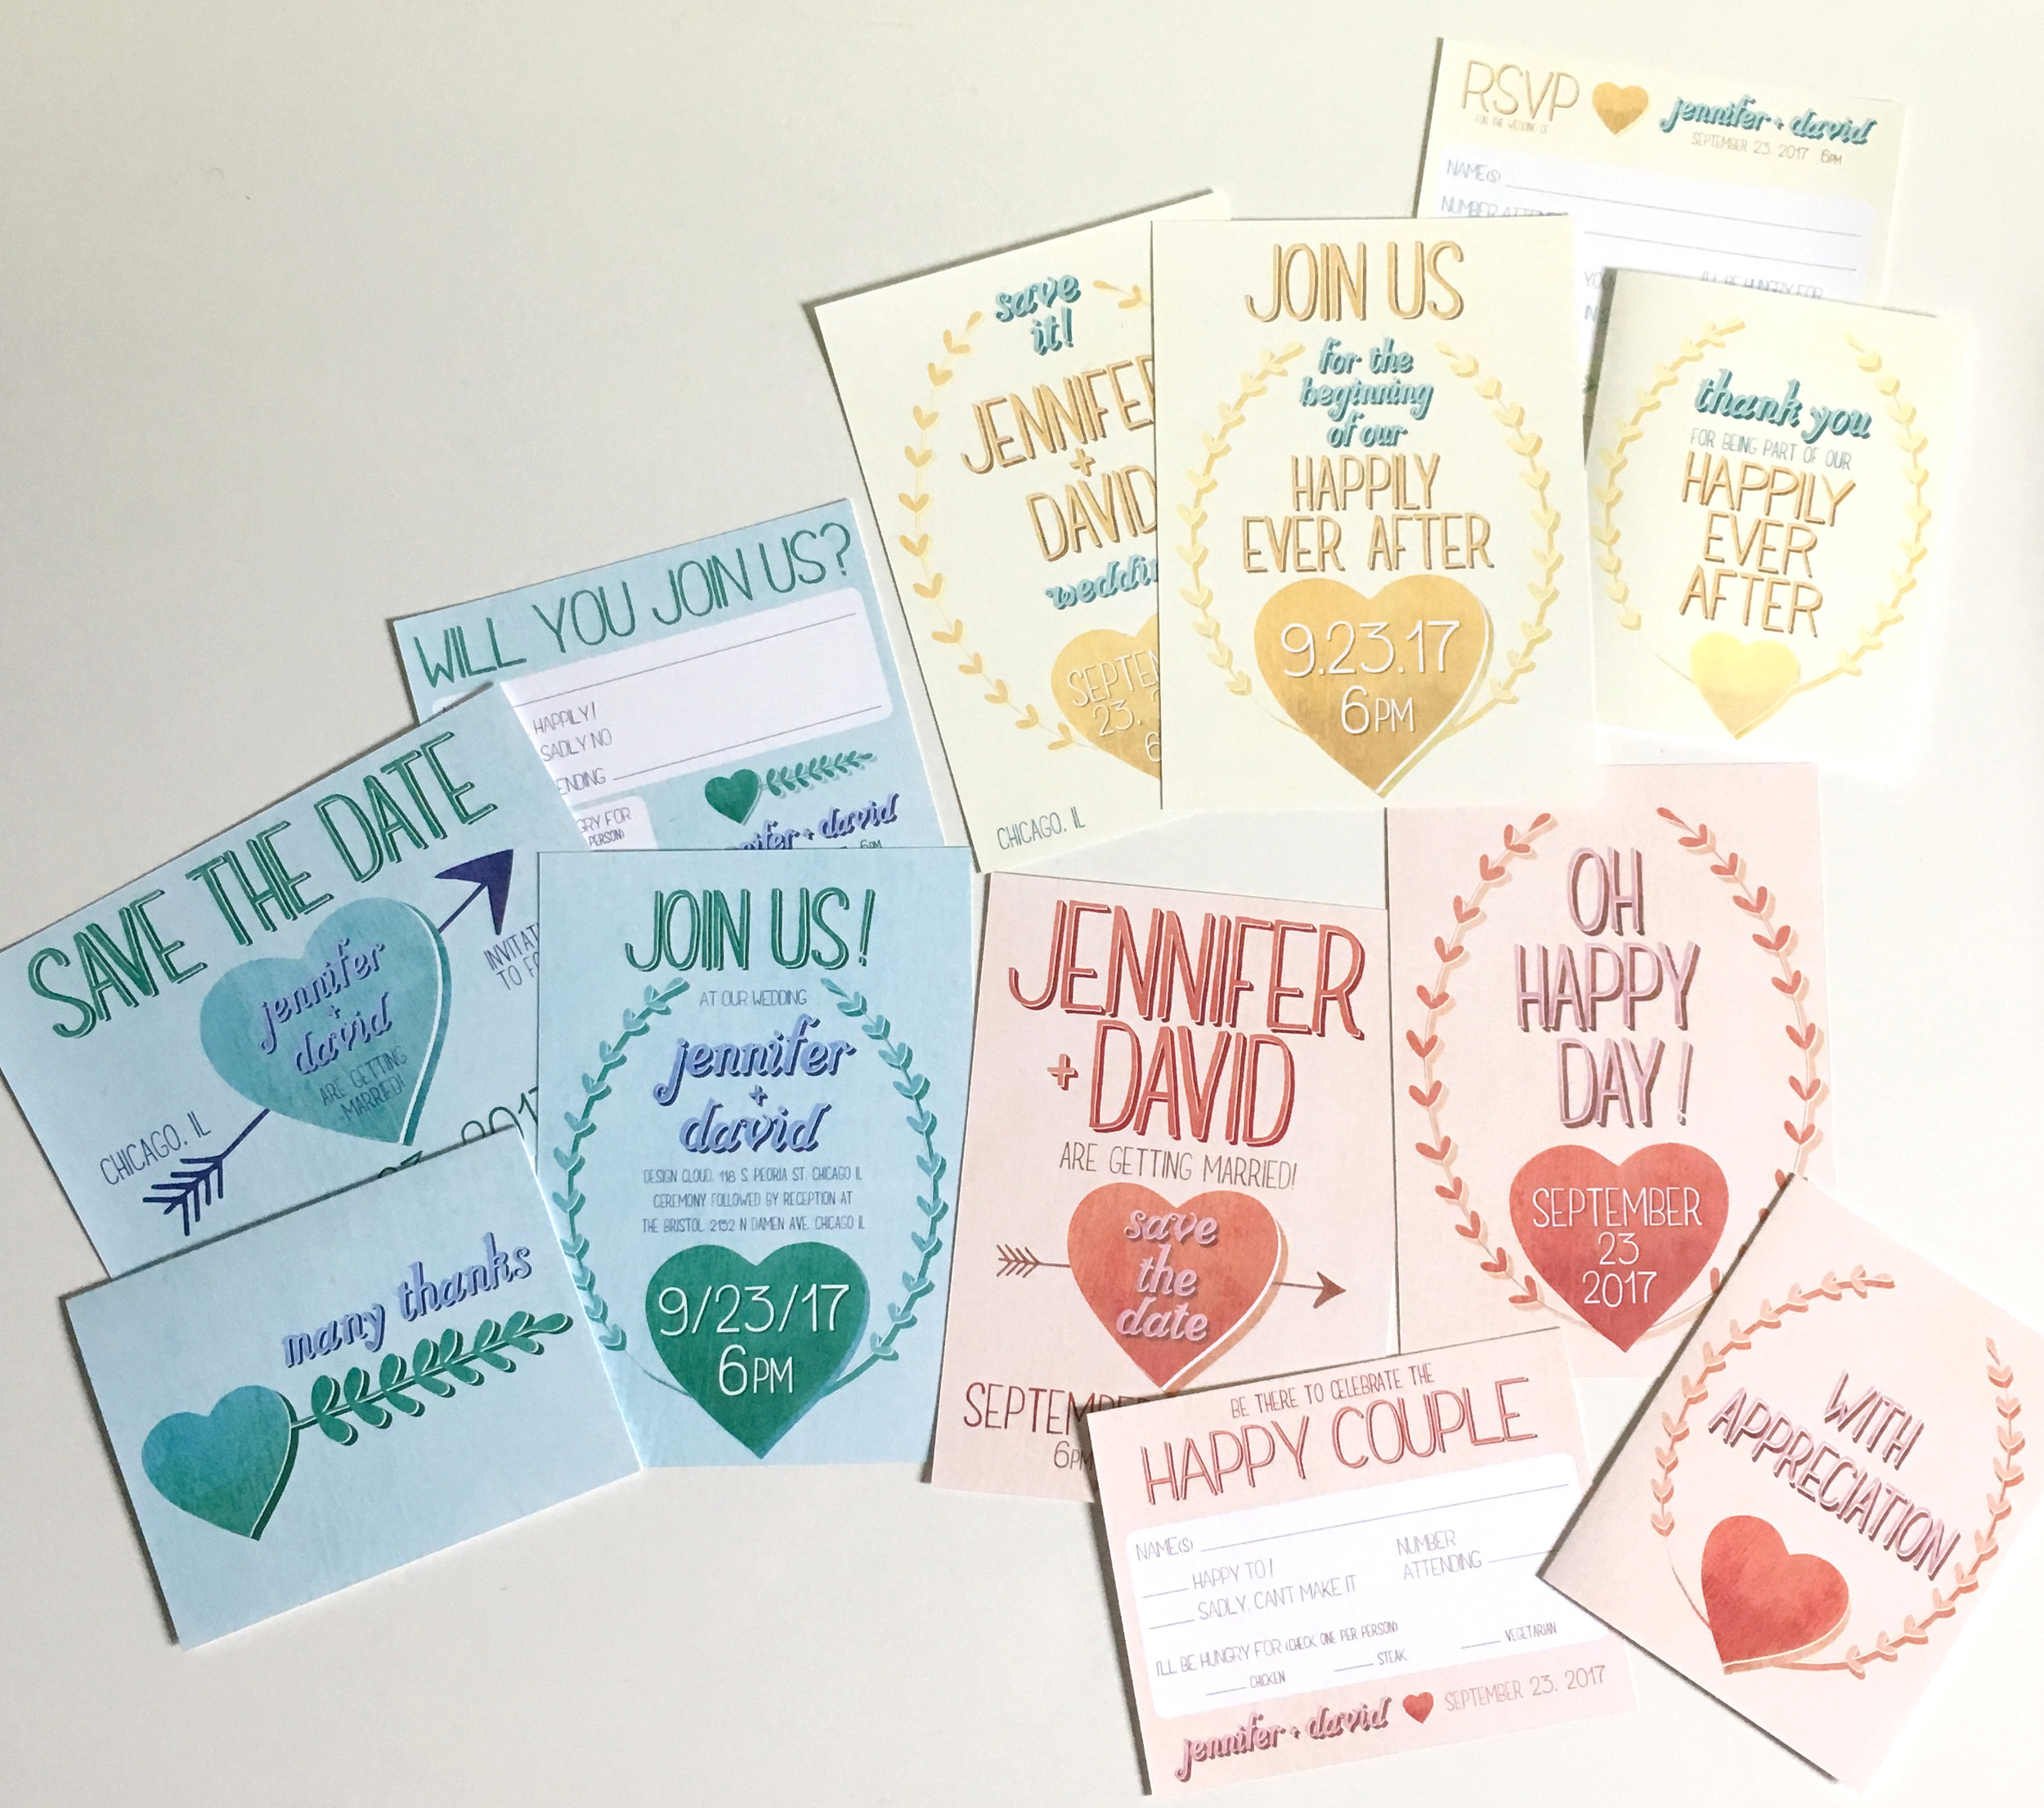 All three wedding invitation suites, inspired by the original print, above.